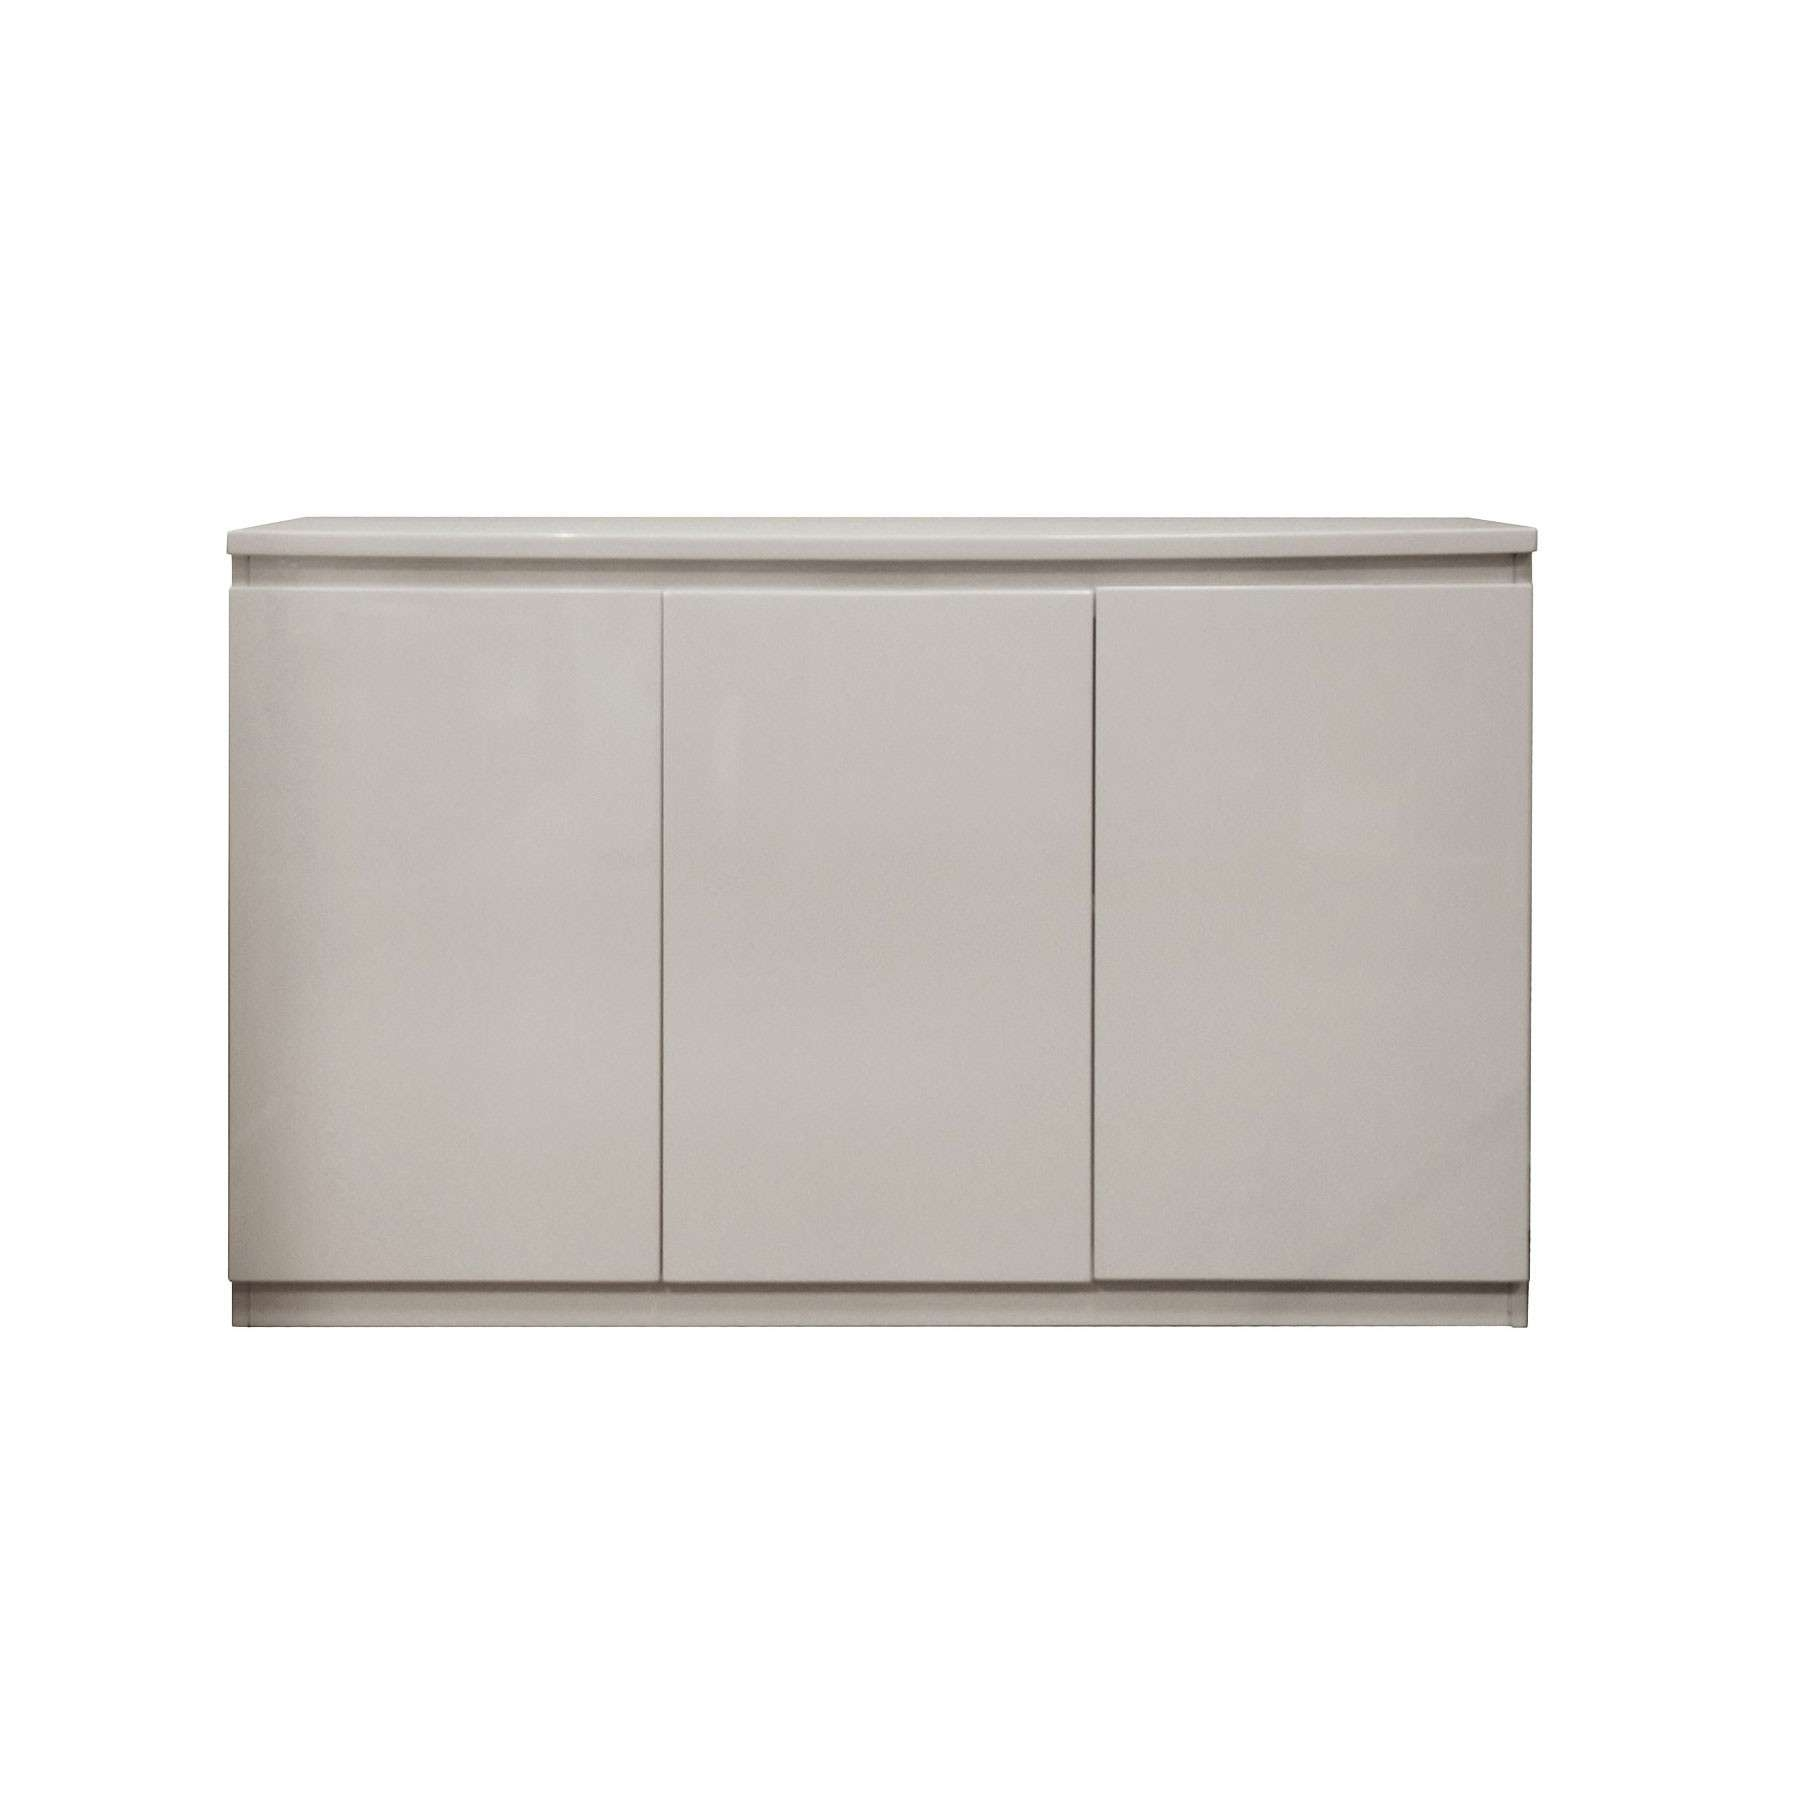 High Gloss Grey 3 Door Sideboard With High Gloss Grey Sideboards (View 14 of 20)